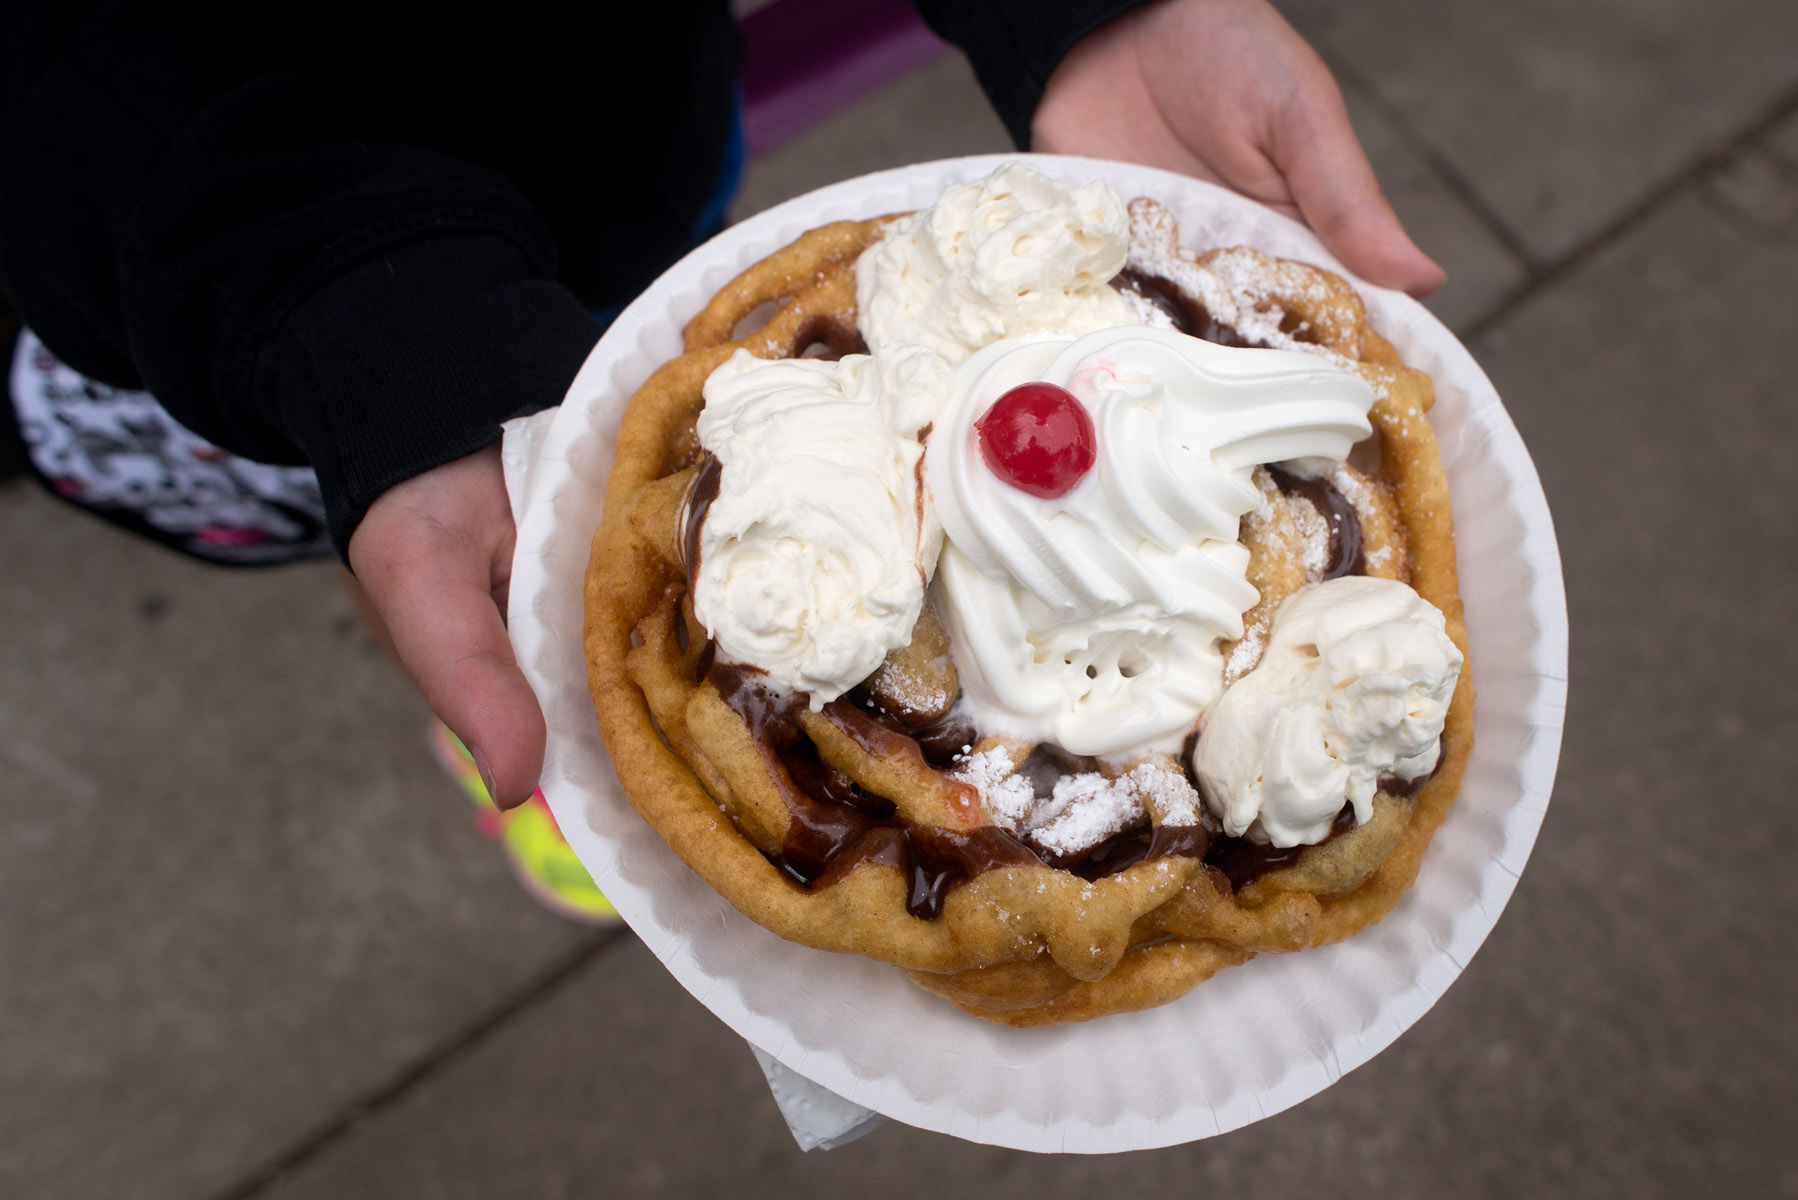 The Funnel Cake booth at the Minnesota State Fair serves a variety of funnel cakes including this sundae version with ice cream and chocolate sauce.